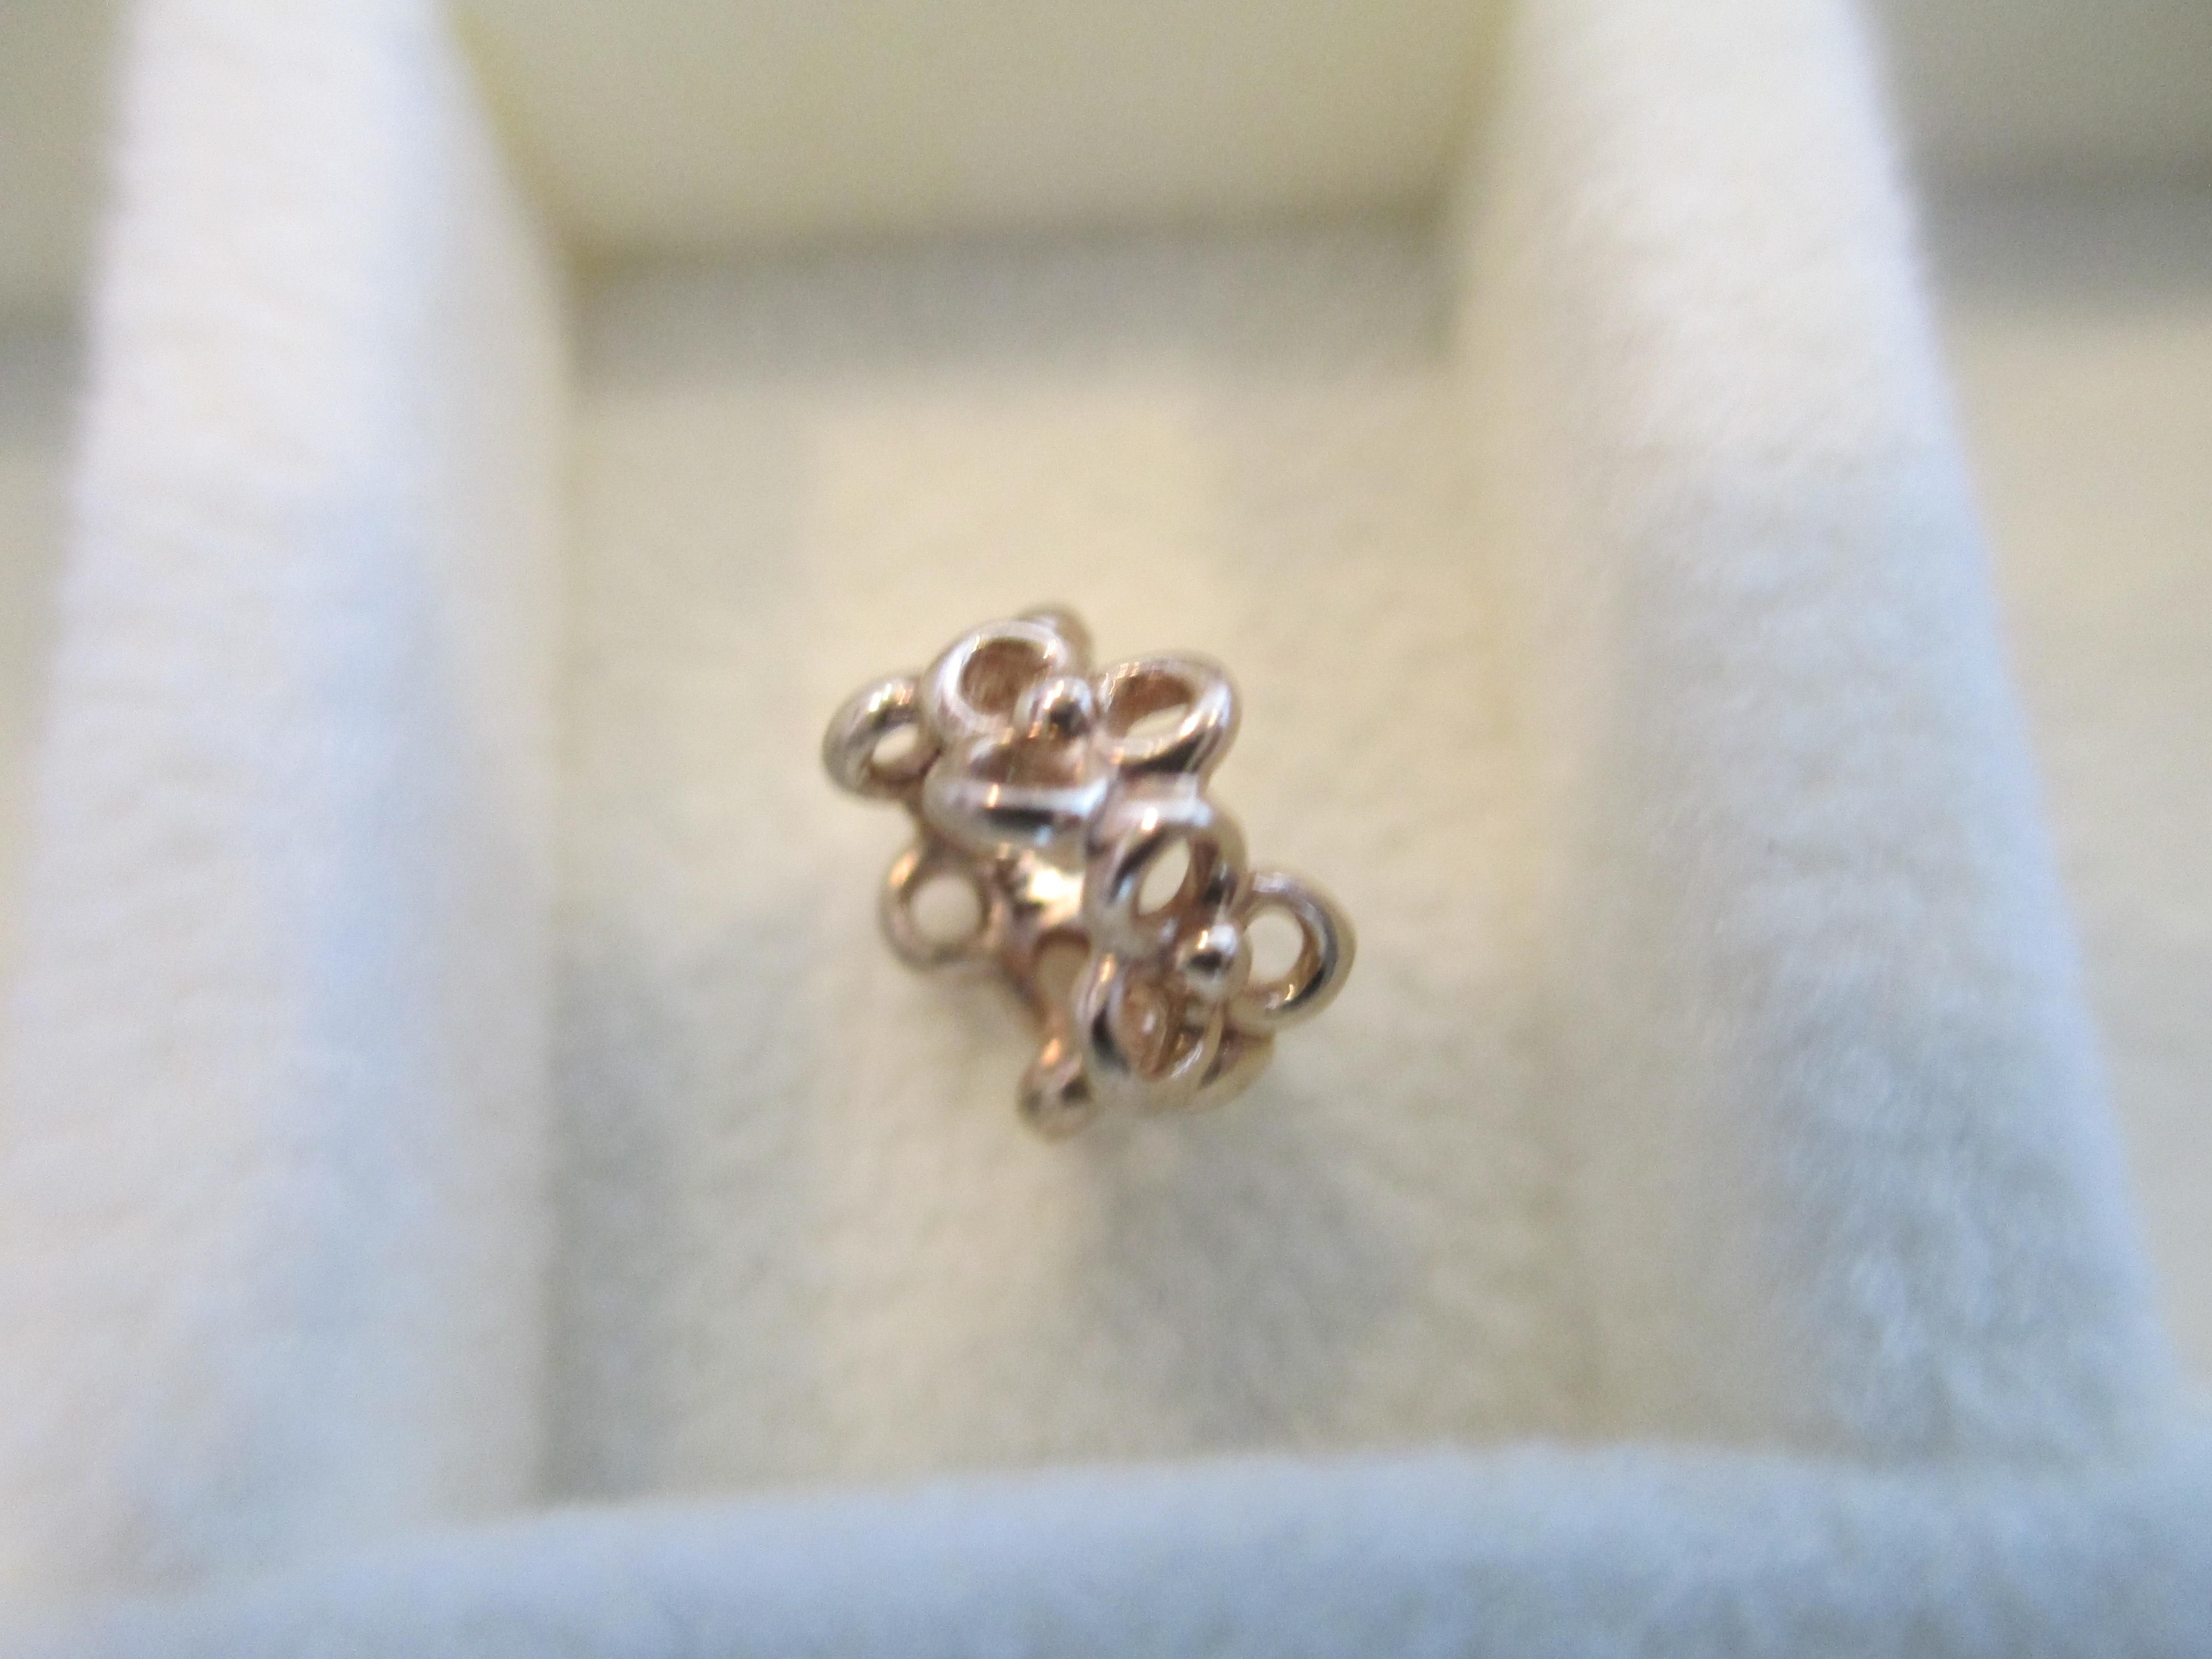 67e32da30 Pandora 750451 Trinity Flower Spacer 14K Solid Gold Bead Charm. Free  shipping and guaranteed authenticity